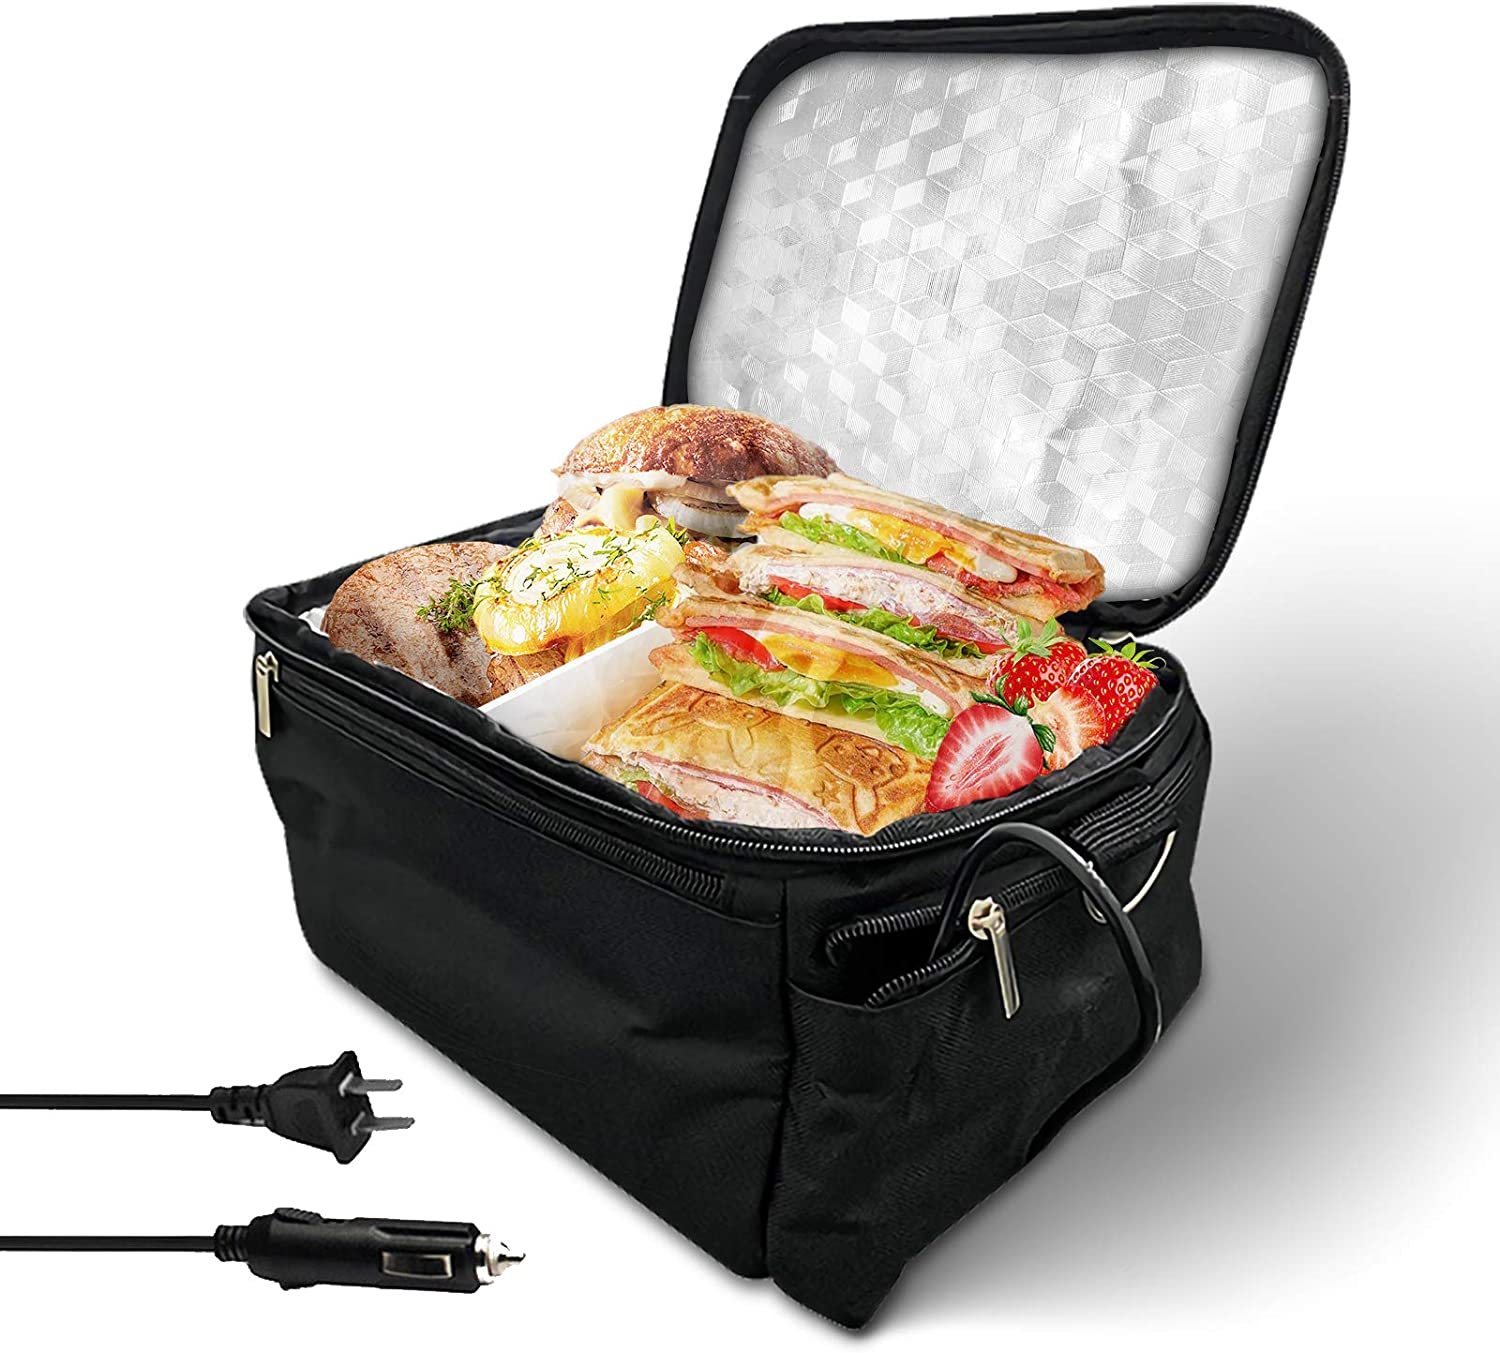 Portable Oven Heated Food Warming Tote, MUniqe Car Heating Lunch Box For Reheating & Raw Food Cooking in Office, Travel, Potlucks and Home Kitchen(12V Car Heating and 110V Office etc. Dual Use)